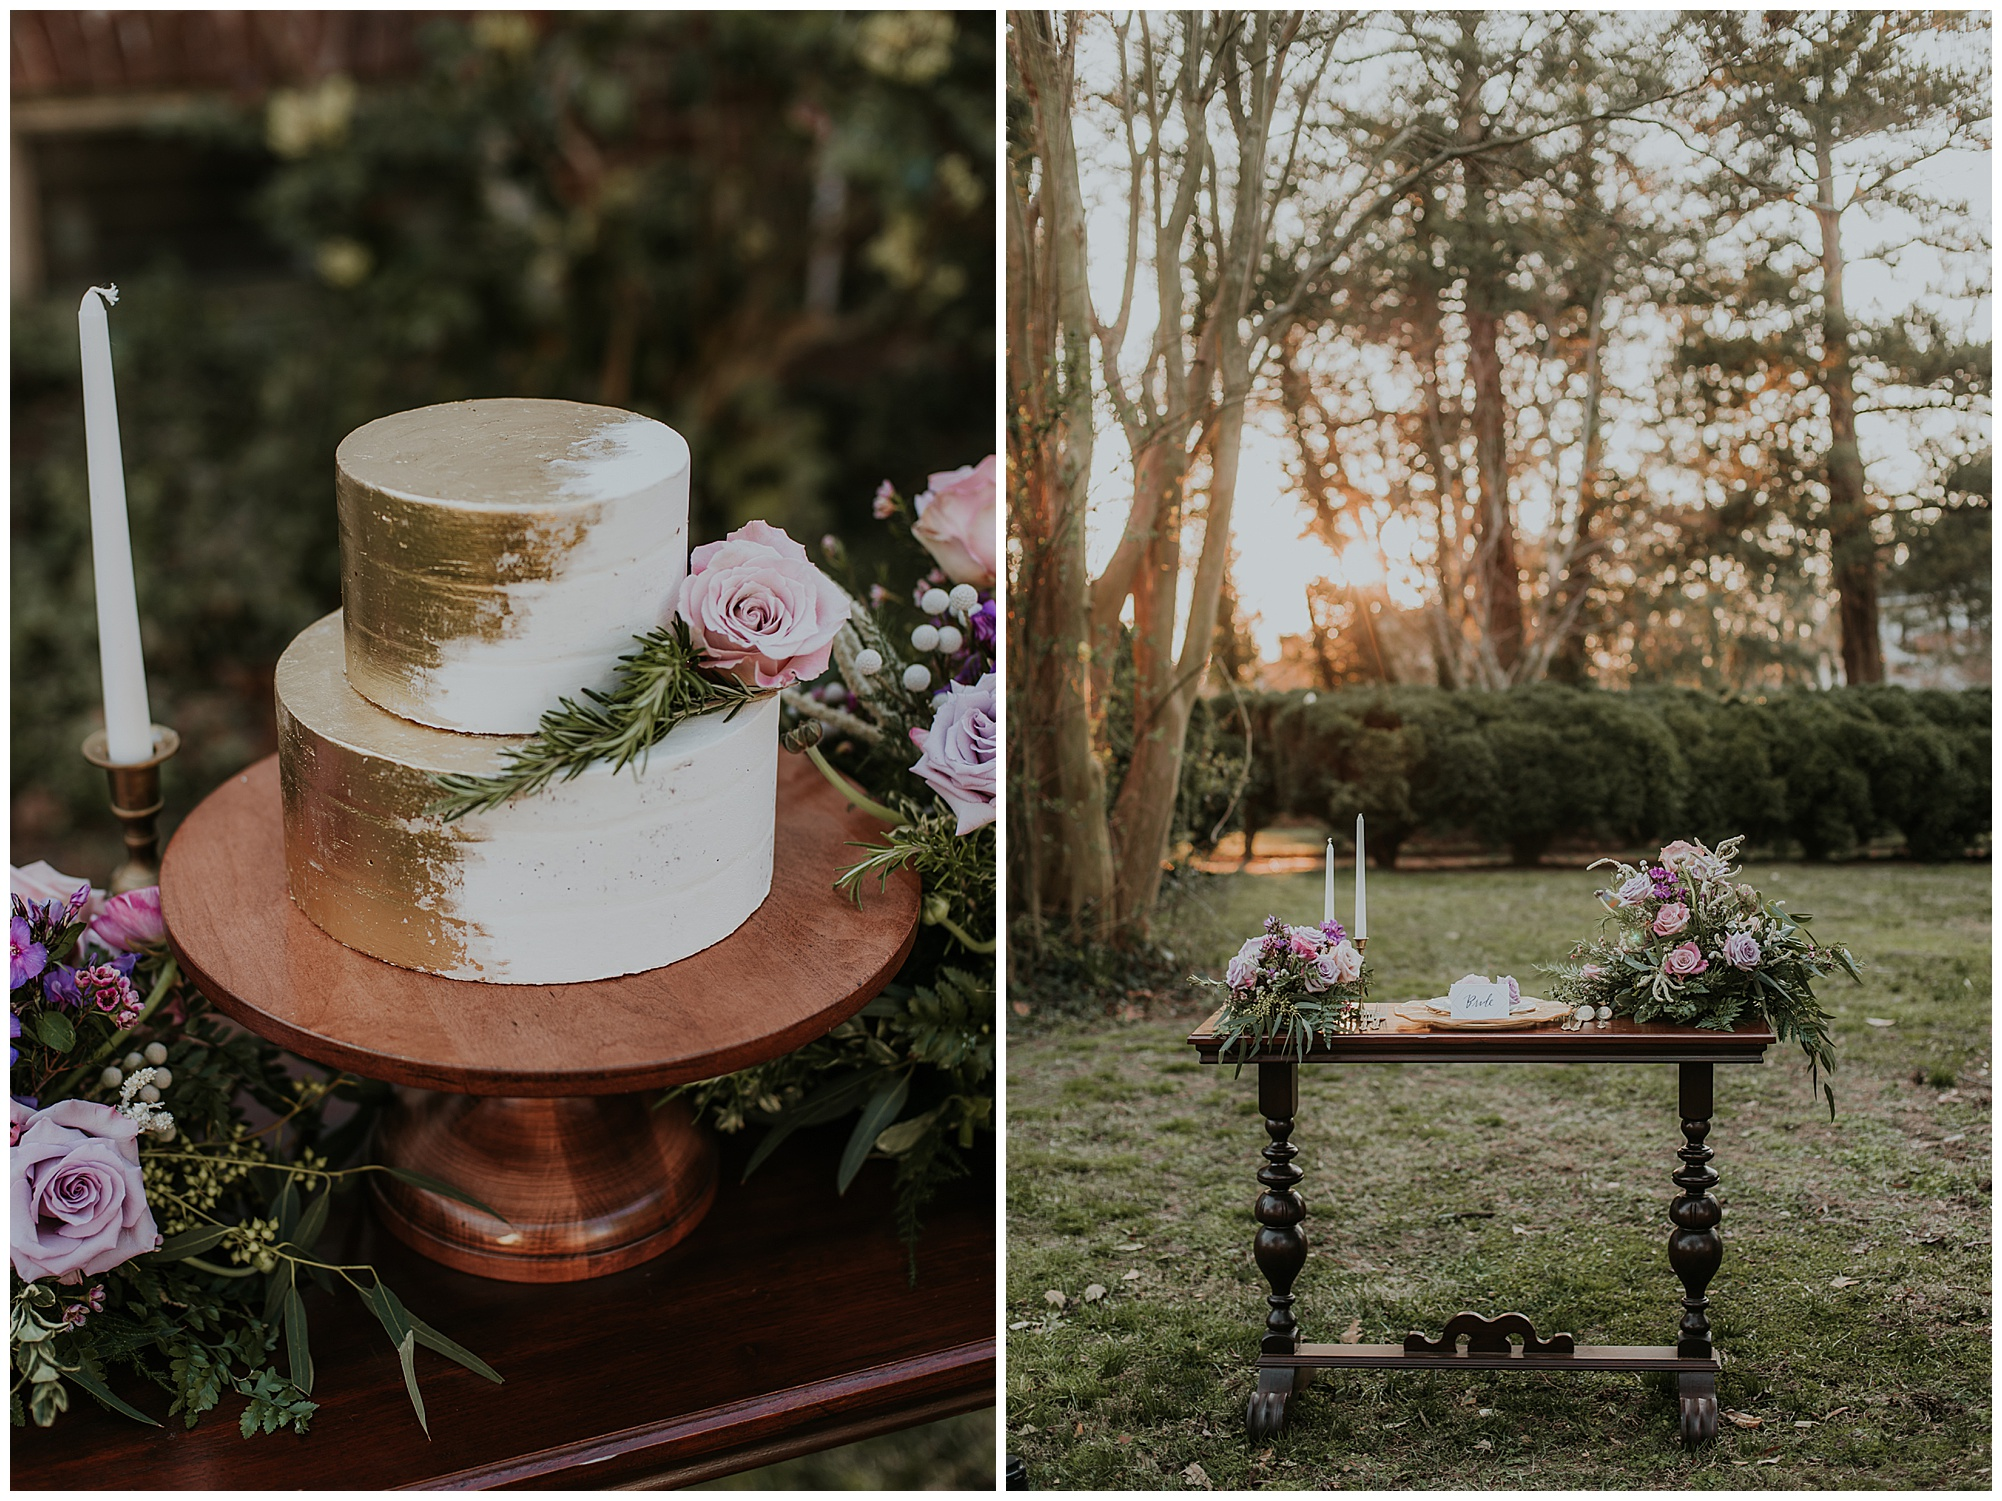 glamorous and boho style wedding theme at chanceford hall bed and breakfast. chanceford hall wedding now featured on my eastern shore wedding.